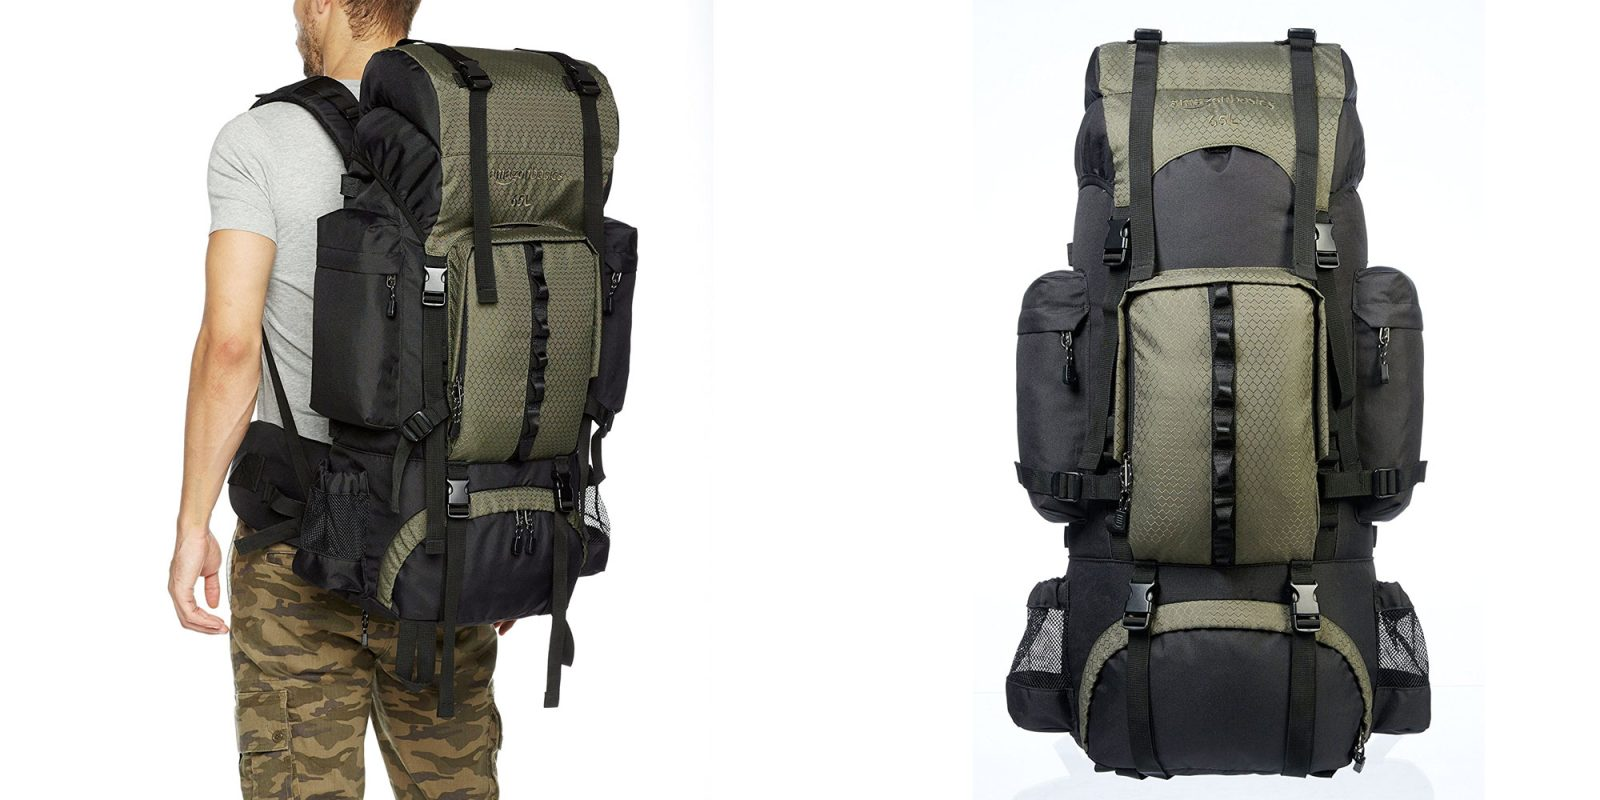 AmazonBasics 65L Internal Frame Hiking Backpack is within cents of ...